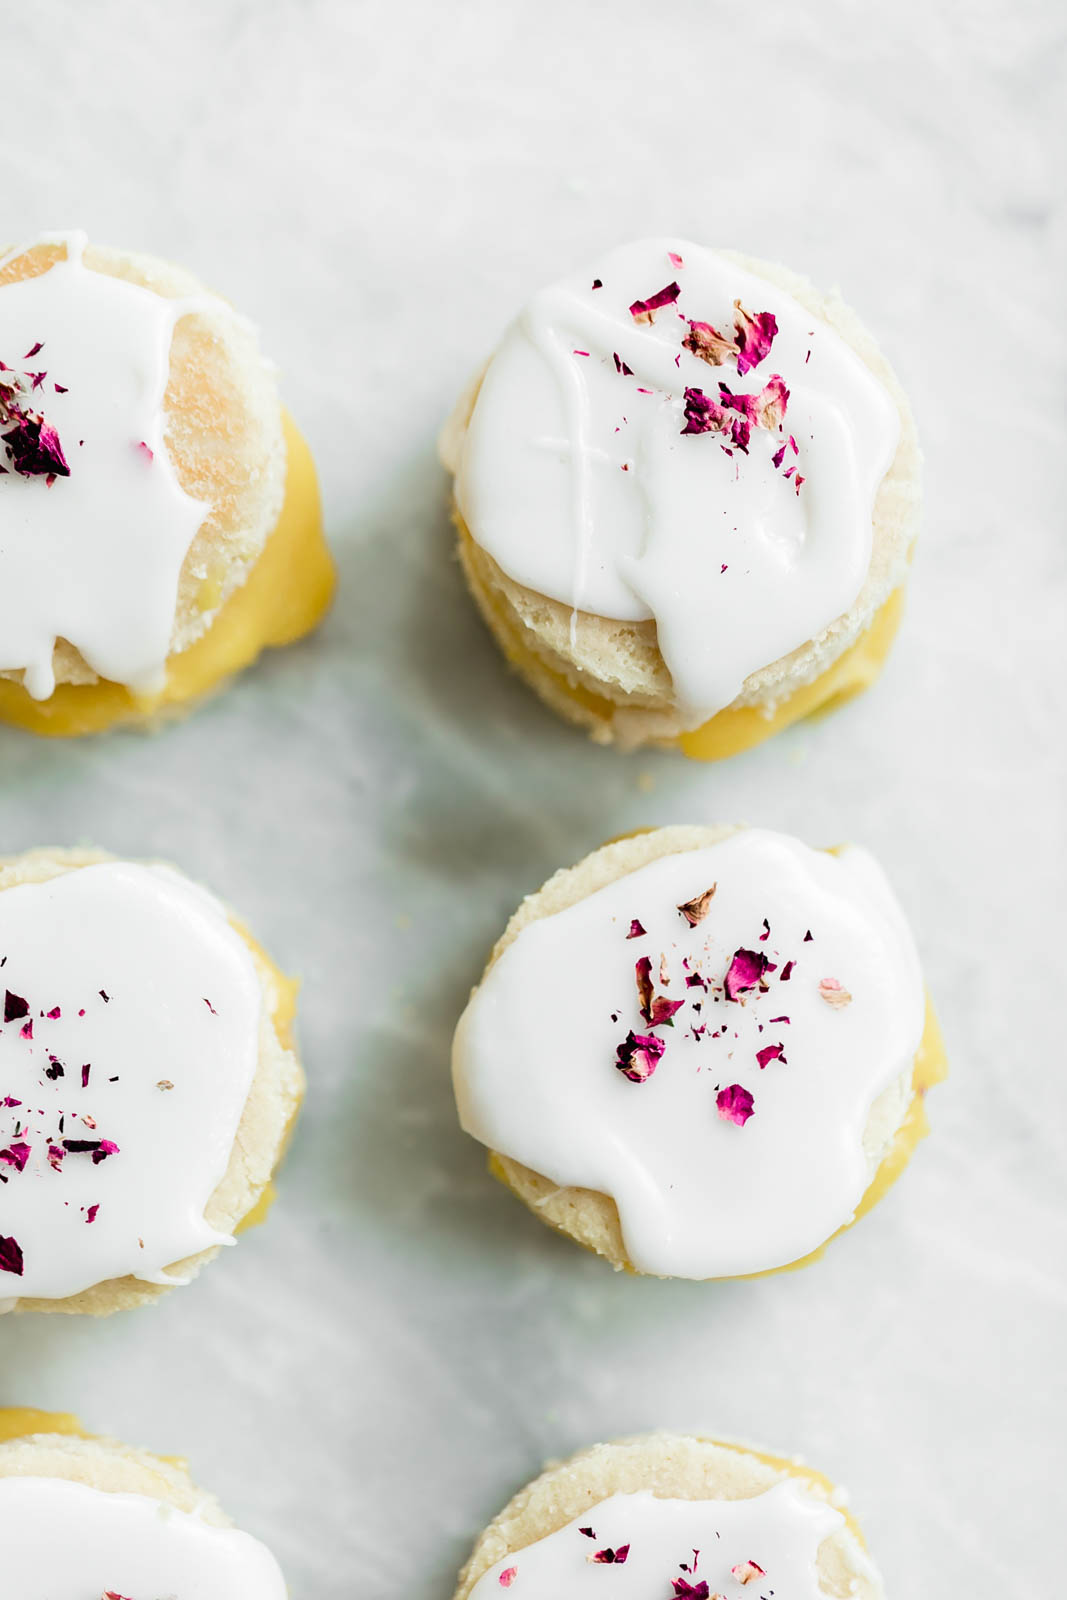 Coconut Lemon Curd Petit Fours: homemade lemon curd sandwiched between two coconut flour cakes and topped with lemon icing. HELLO SPRING!